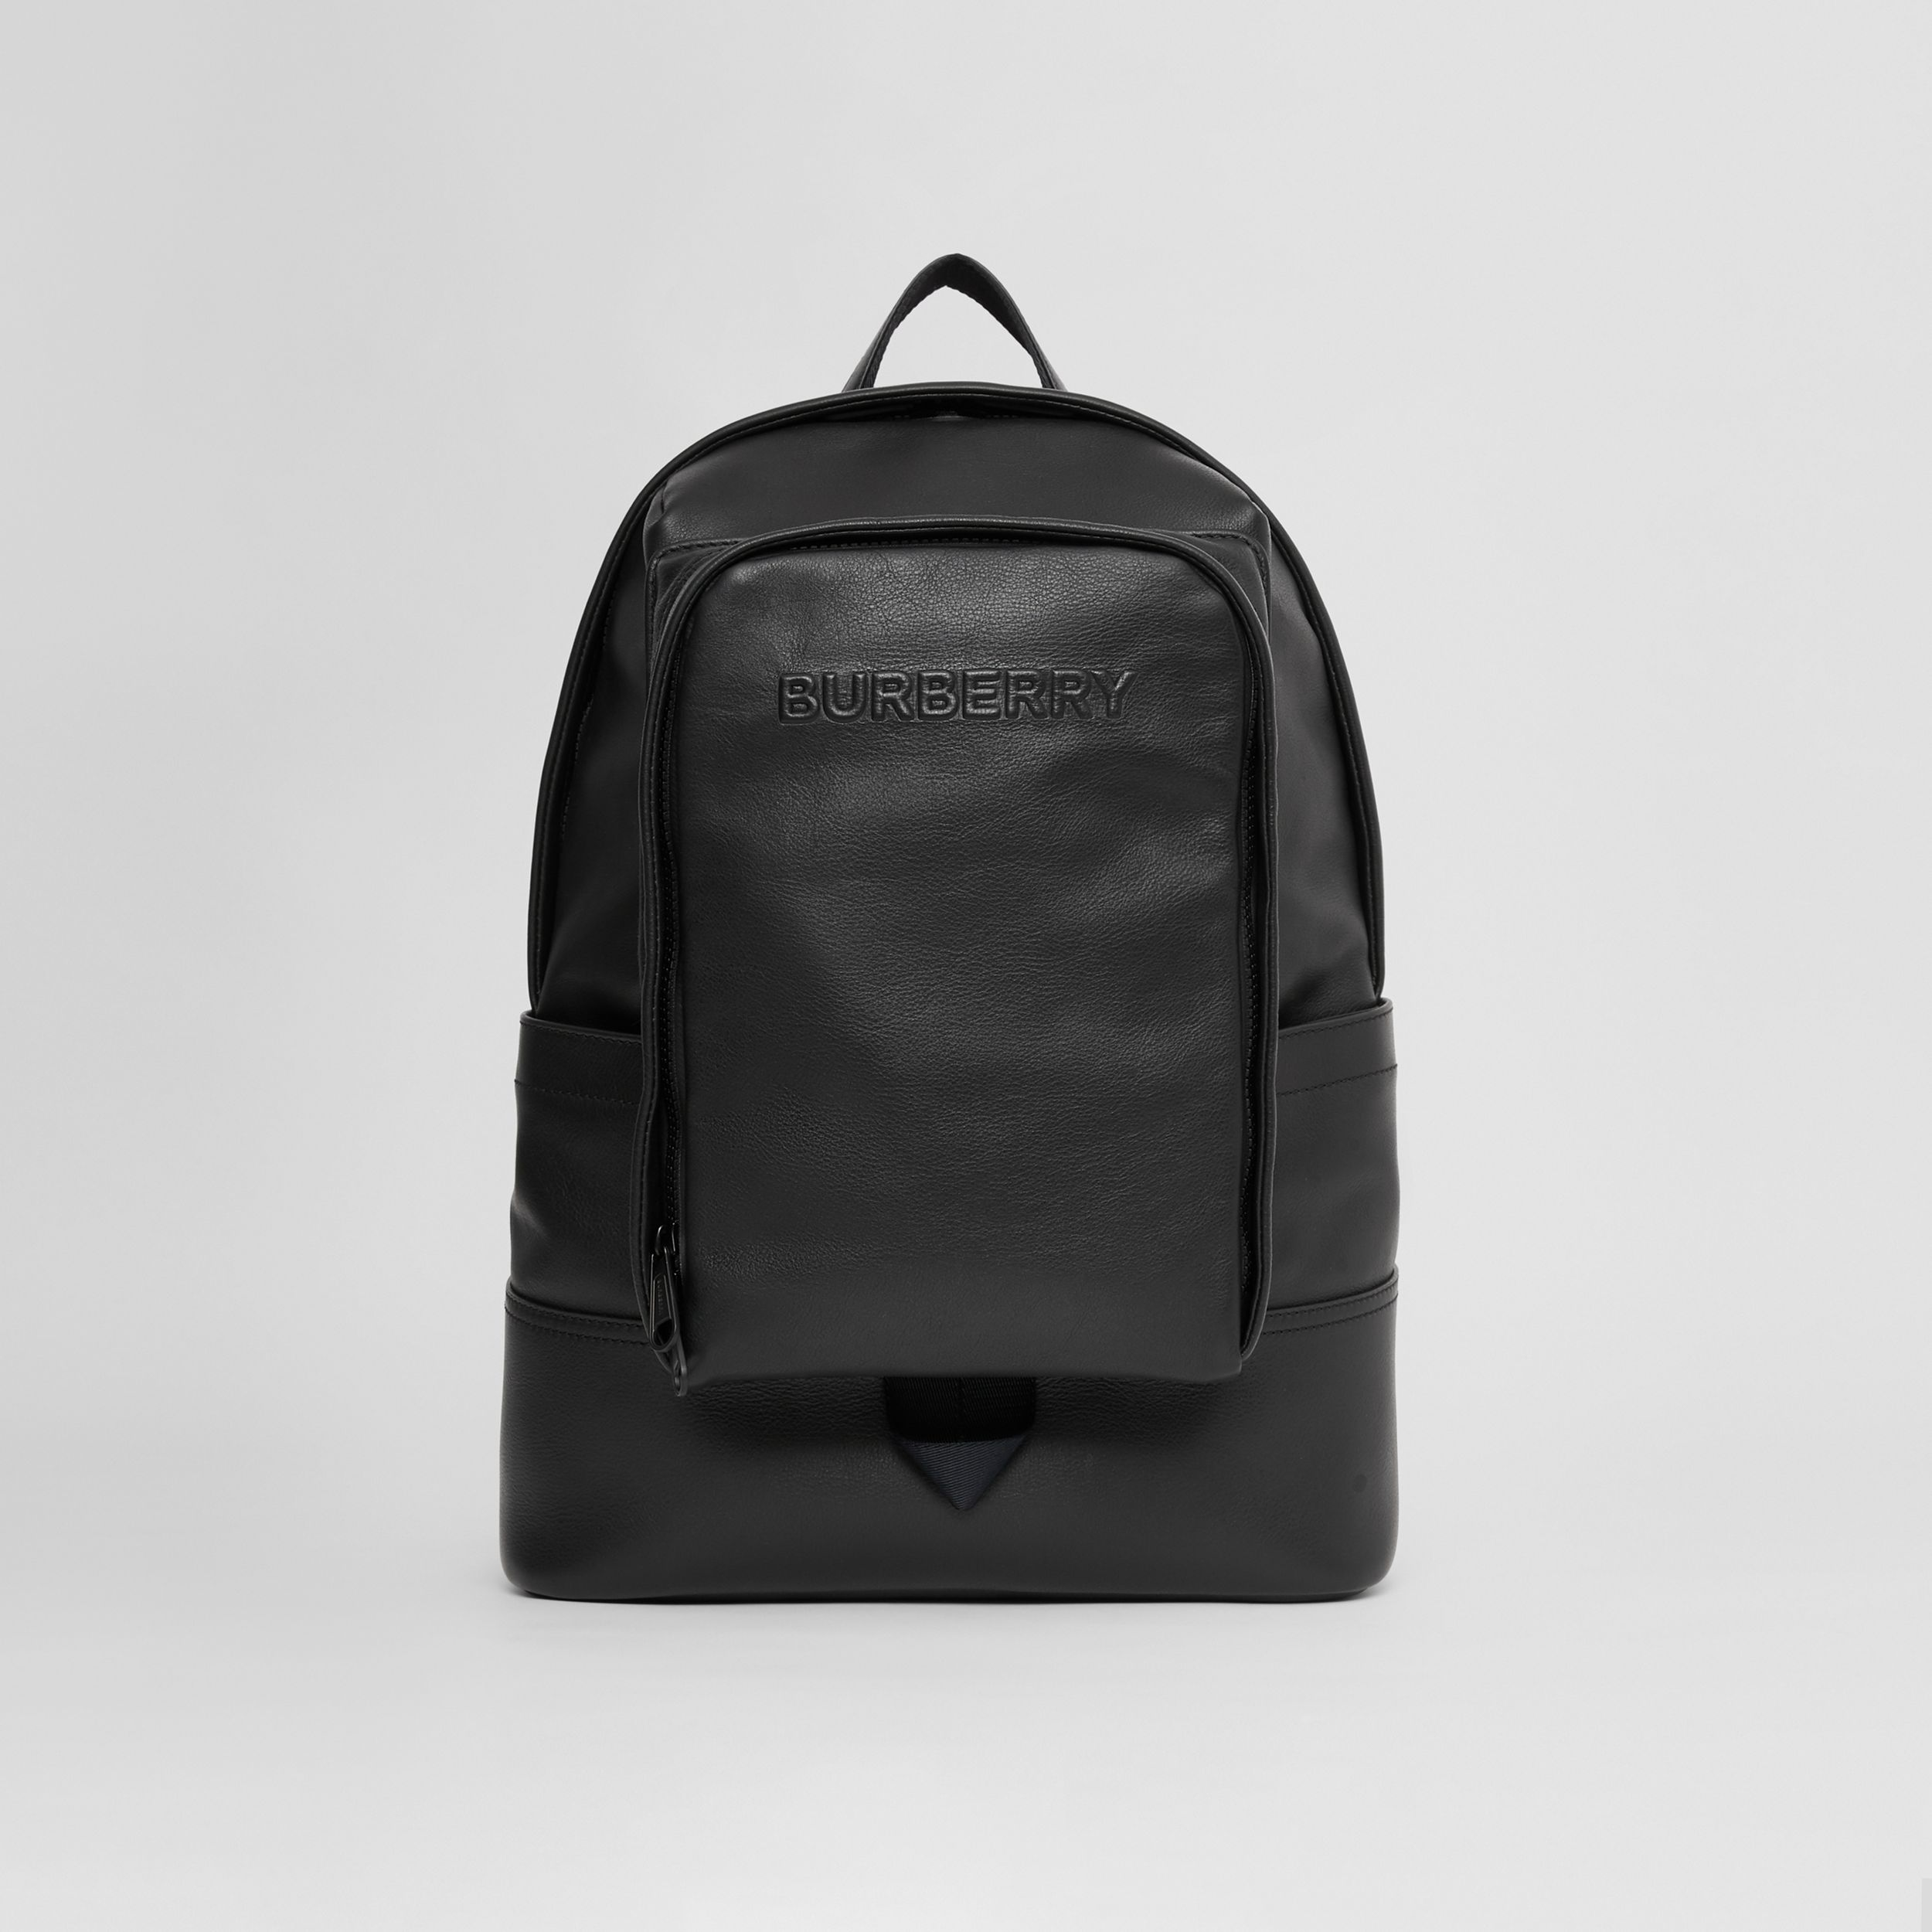 Large Logo Embossed Leather Backpack in Black - Men | Burberry - 1